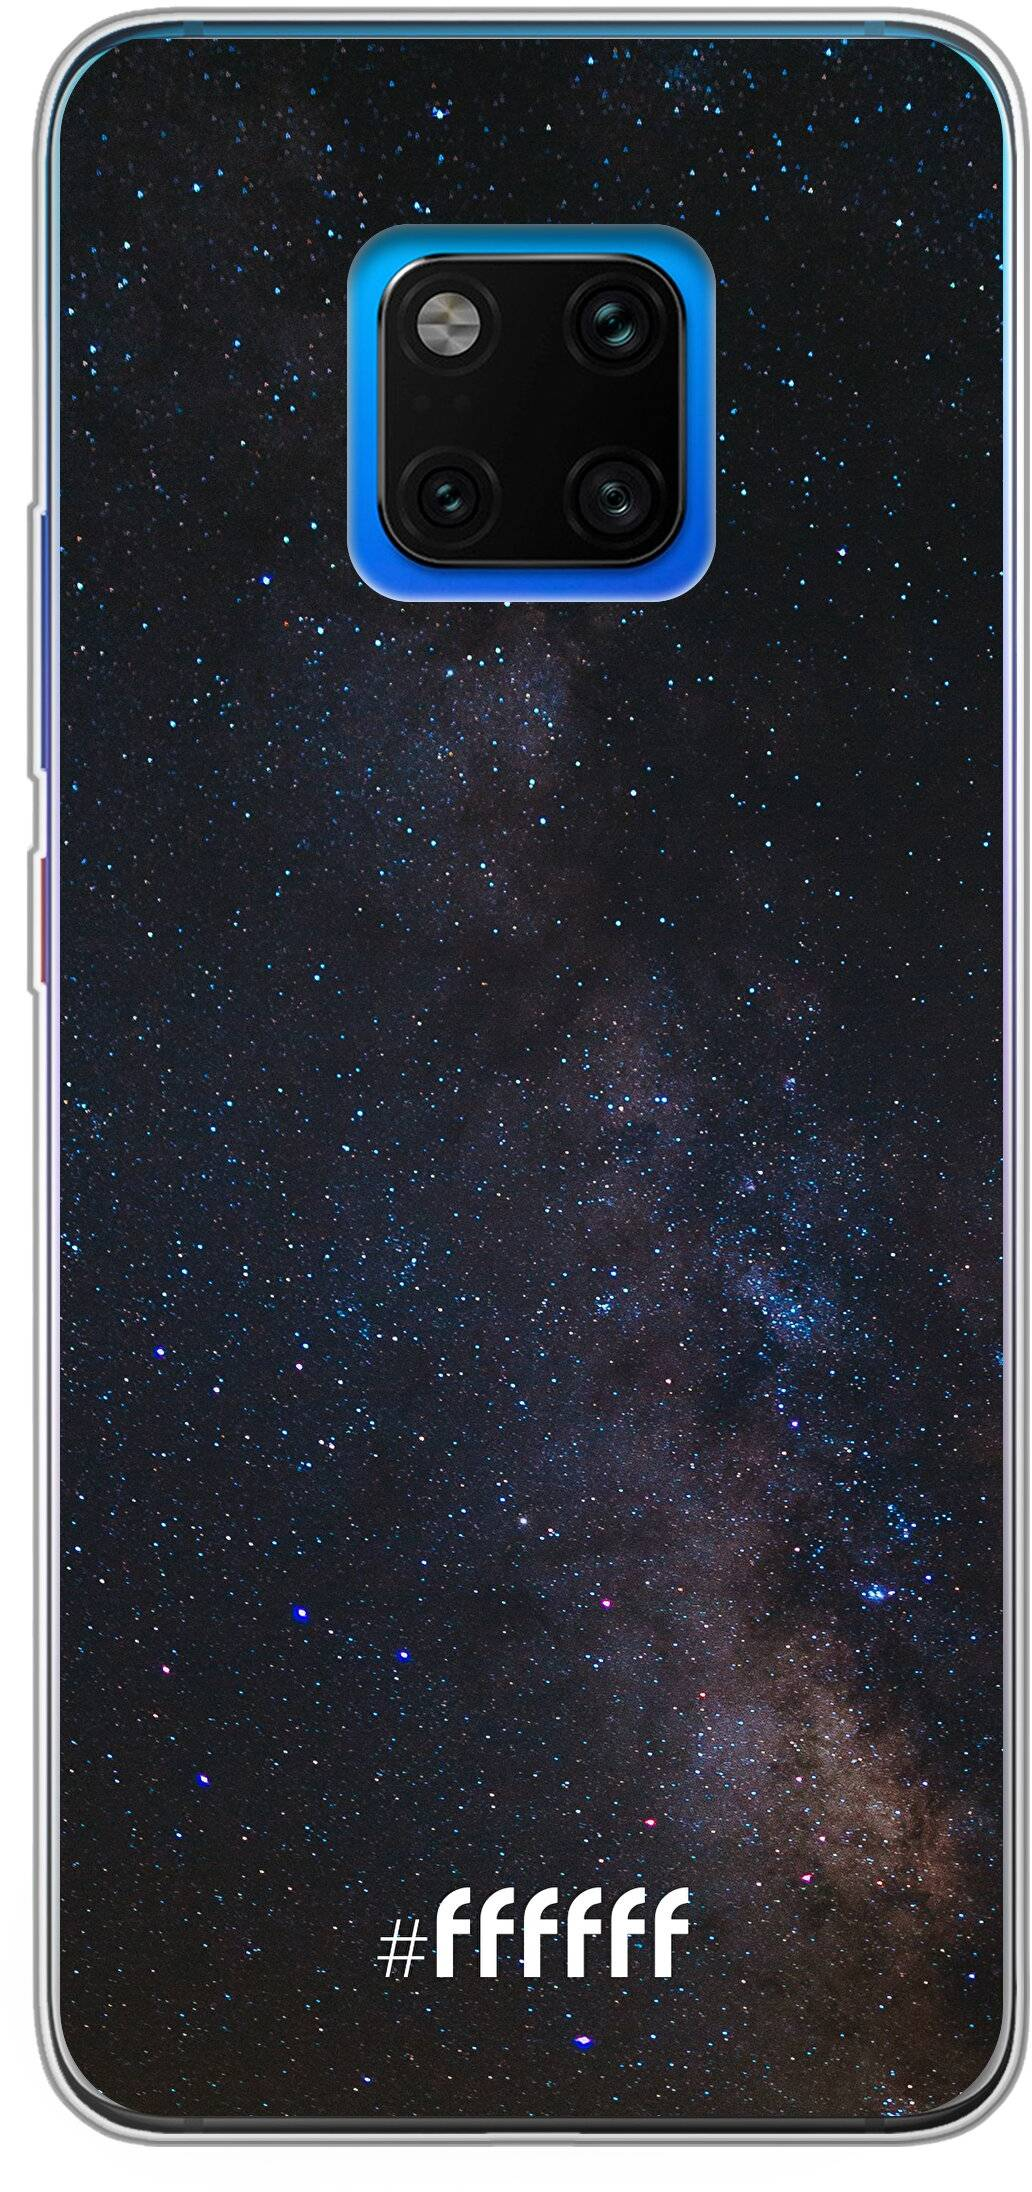 Dark Space Mate 20 Pro